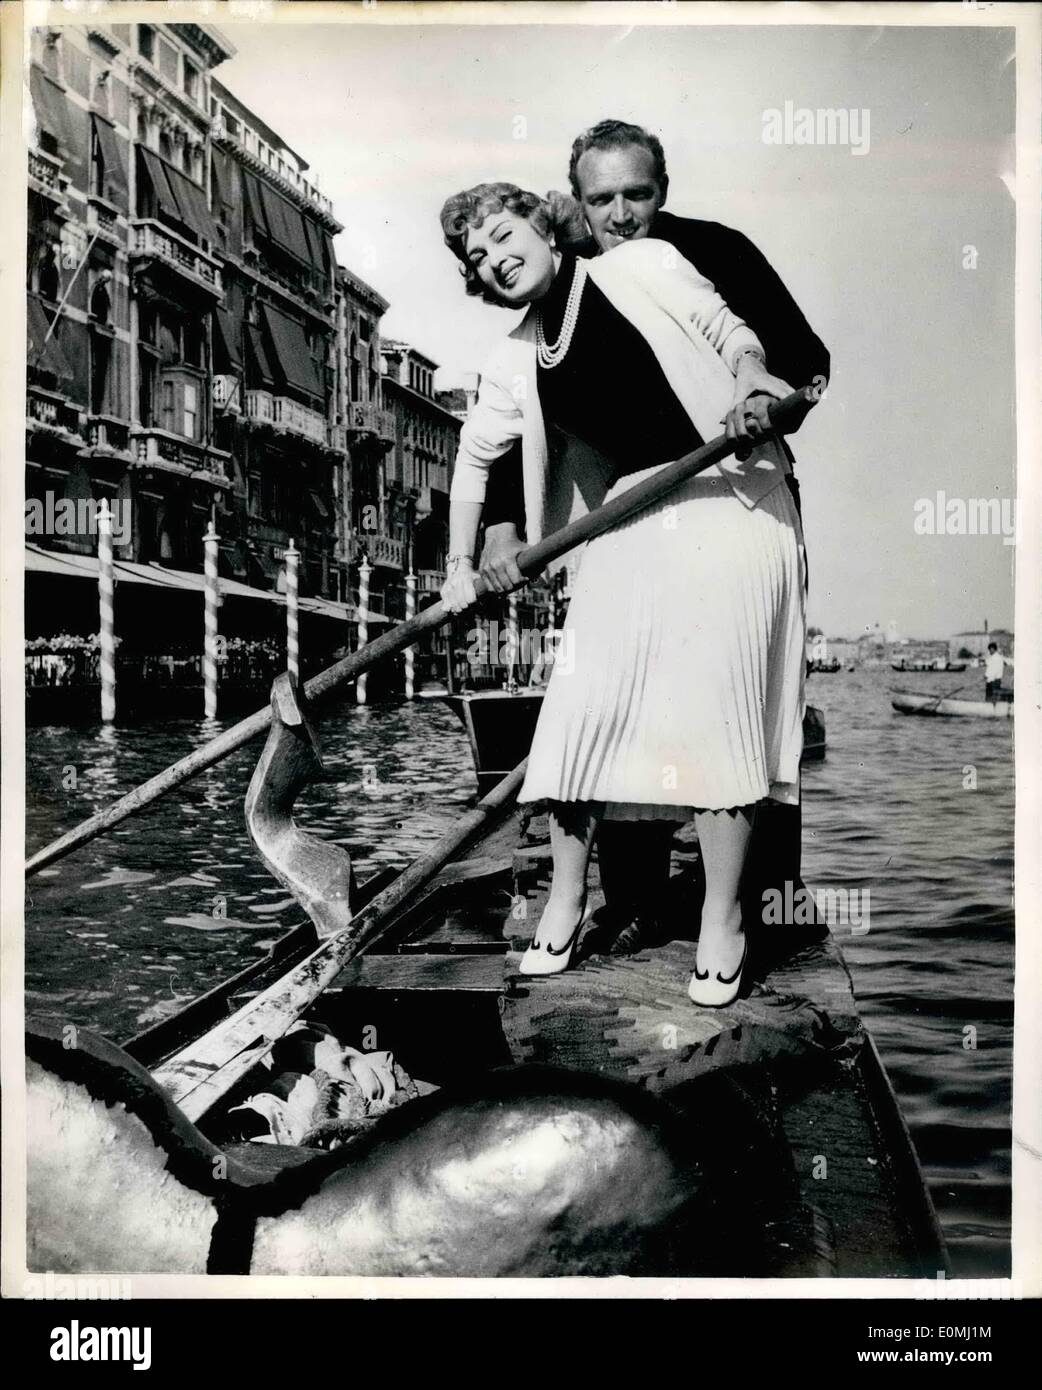 Jun. 06, 1955 - Italian Film Star Tries Her Hand On A Venetian Gondola: The Popular auburn- haired Italian film star Sylvana Pampanini. tries her hand at rowing a gondola on the Grand Canal at Venice- with a little assistance from the gondolier - who said she could join in his crew any time she wanted to. Sylvana was in Venice top see the world premiere of ''Summertime,'' which was filmed entirely in Venice. - Stock Image